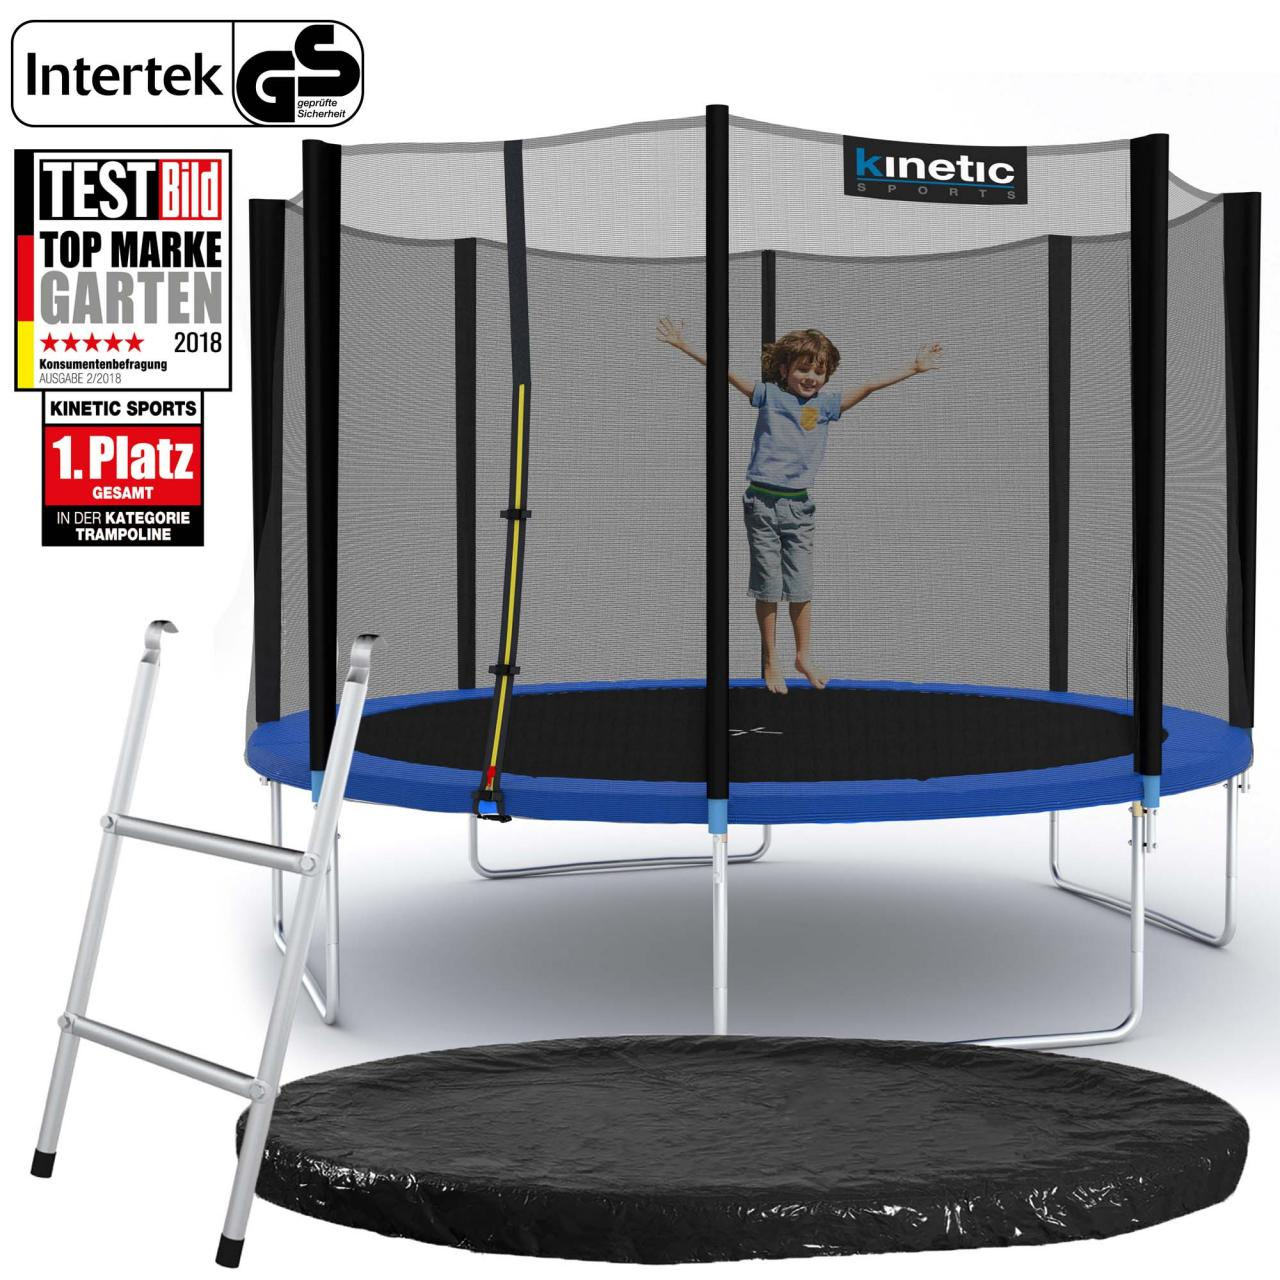 kinetic sports trampolin gartentrampolin mit zubeh r netz leiter regenplane set. Black Bedroom Furniture Sets. Home Design Ideas